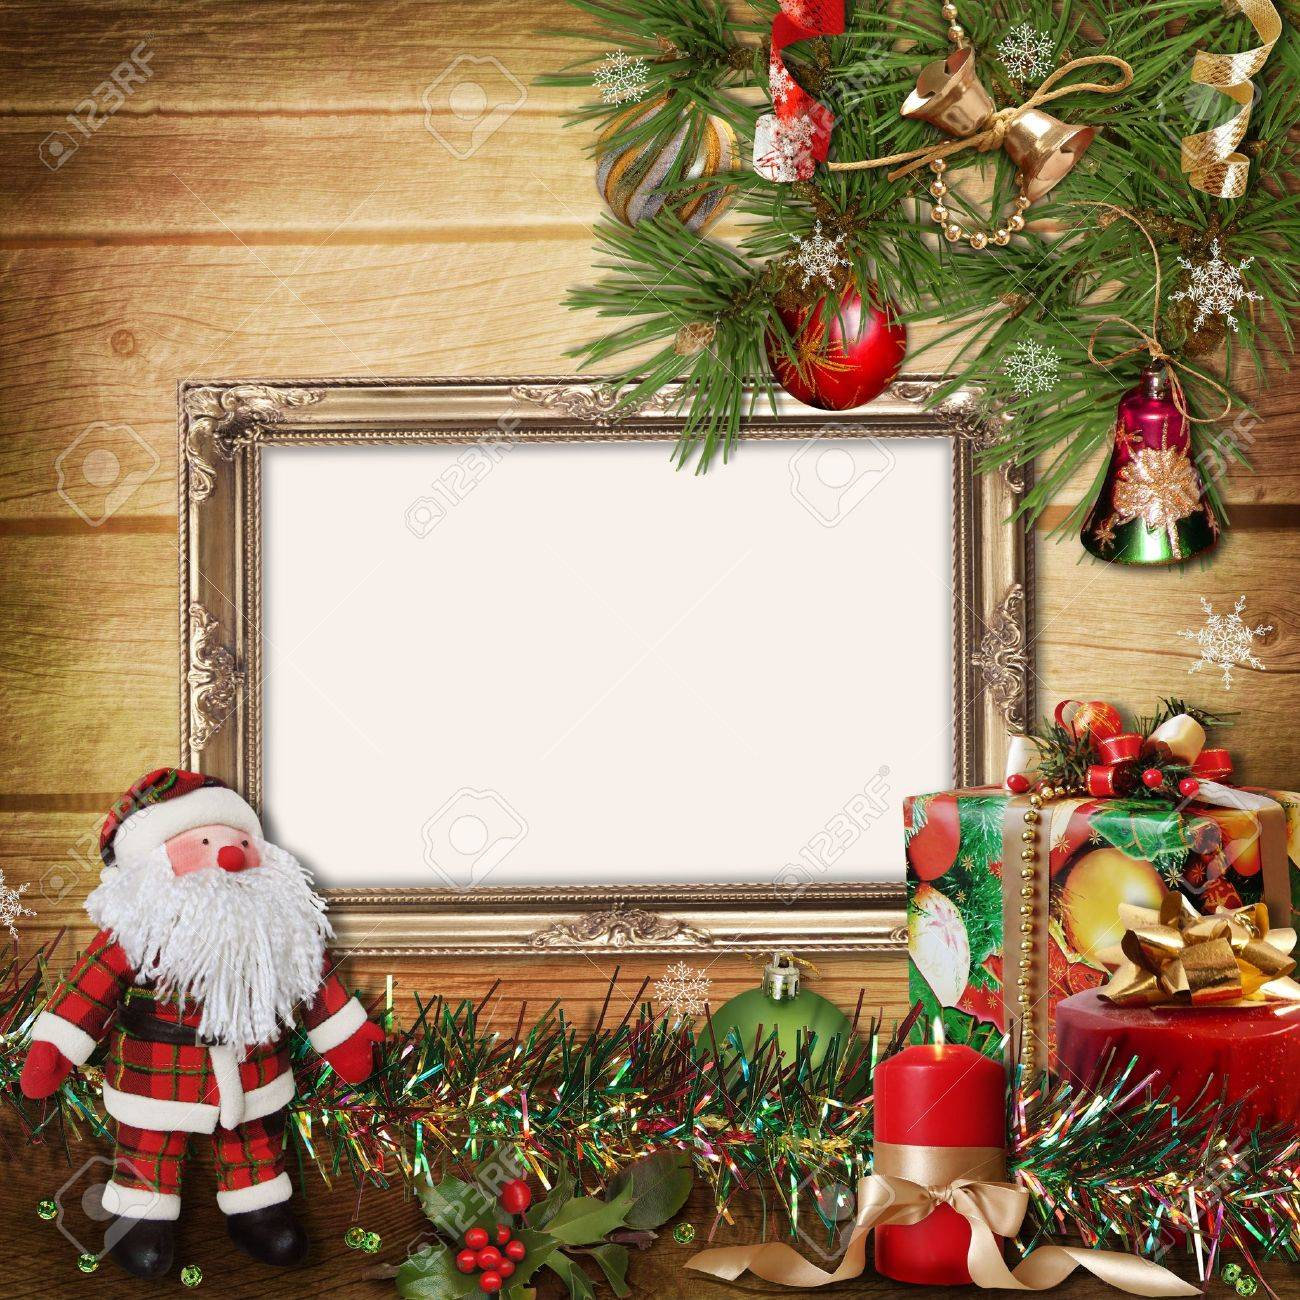 Christmas Card Frame.Christmas Greeting Card With Frames For A Family